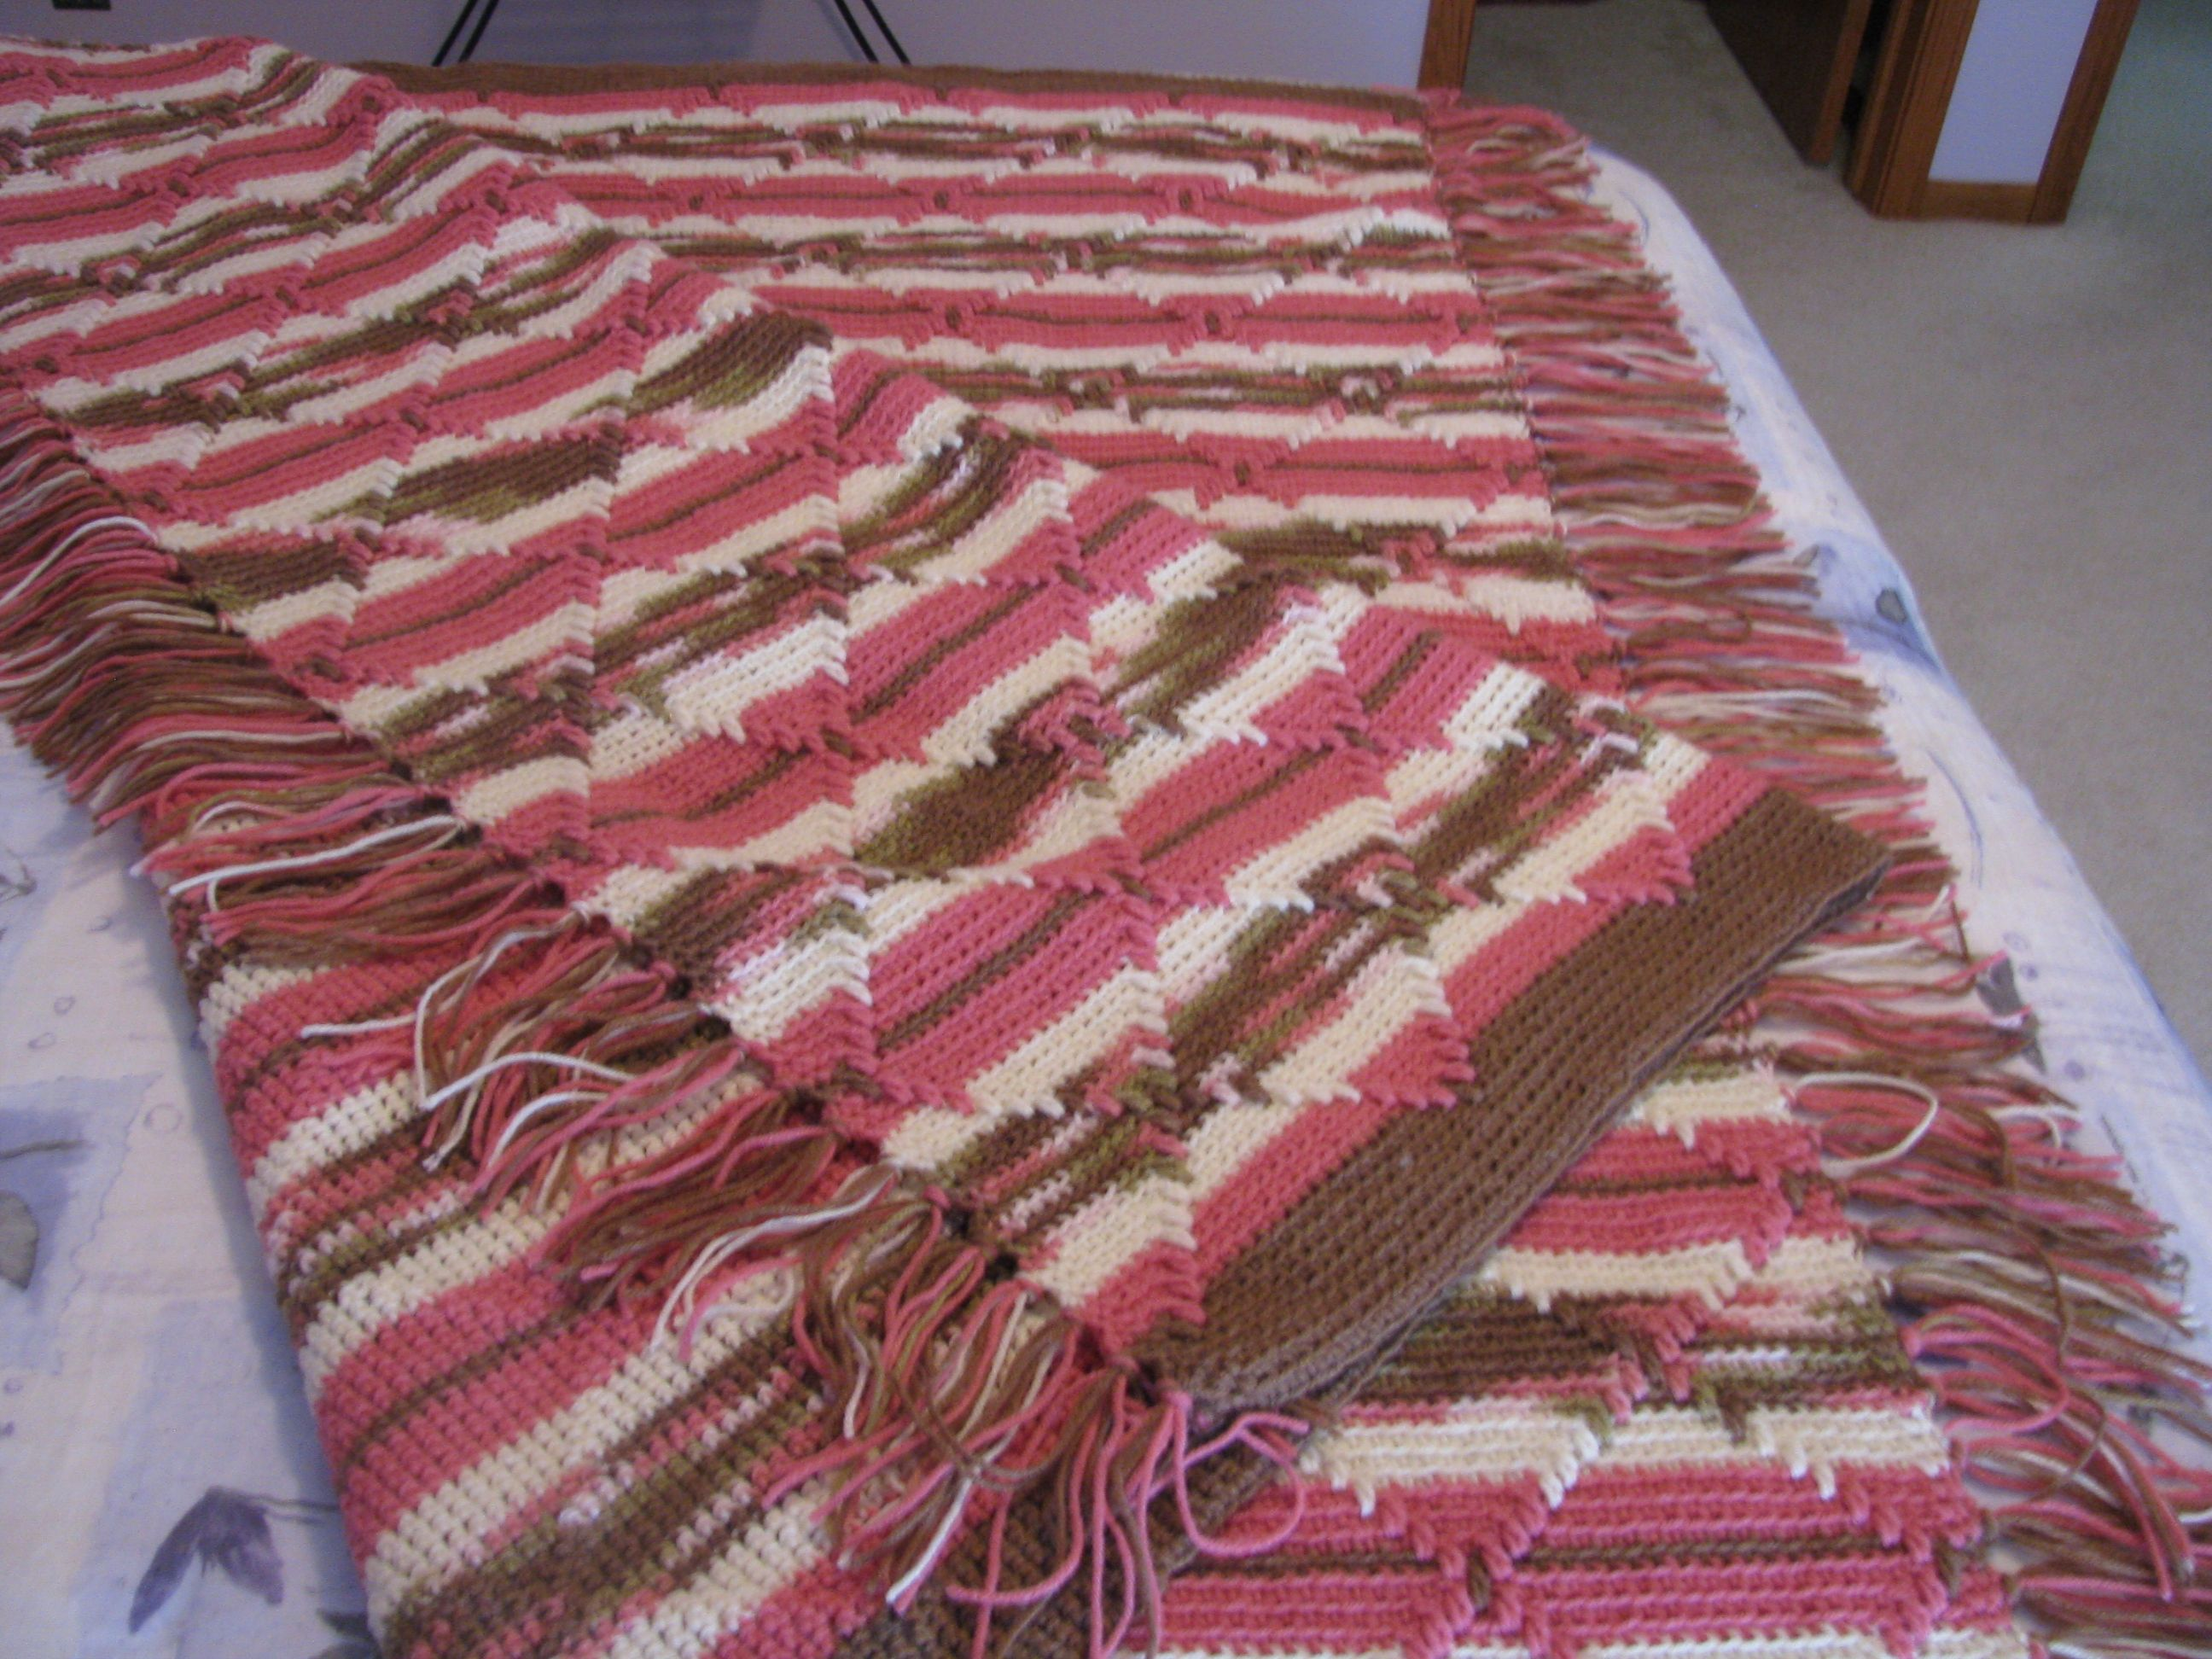 Crocheted Afghan Navajo Pattern Pink Camouflage Crochet